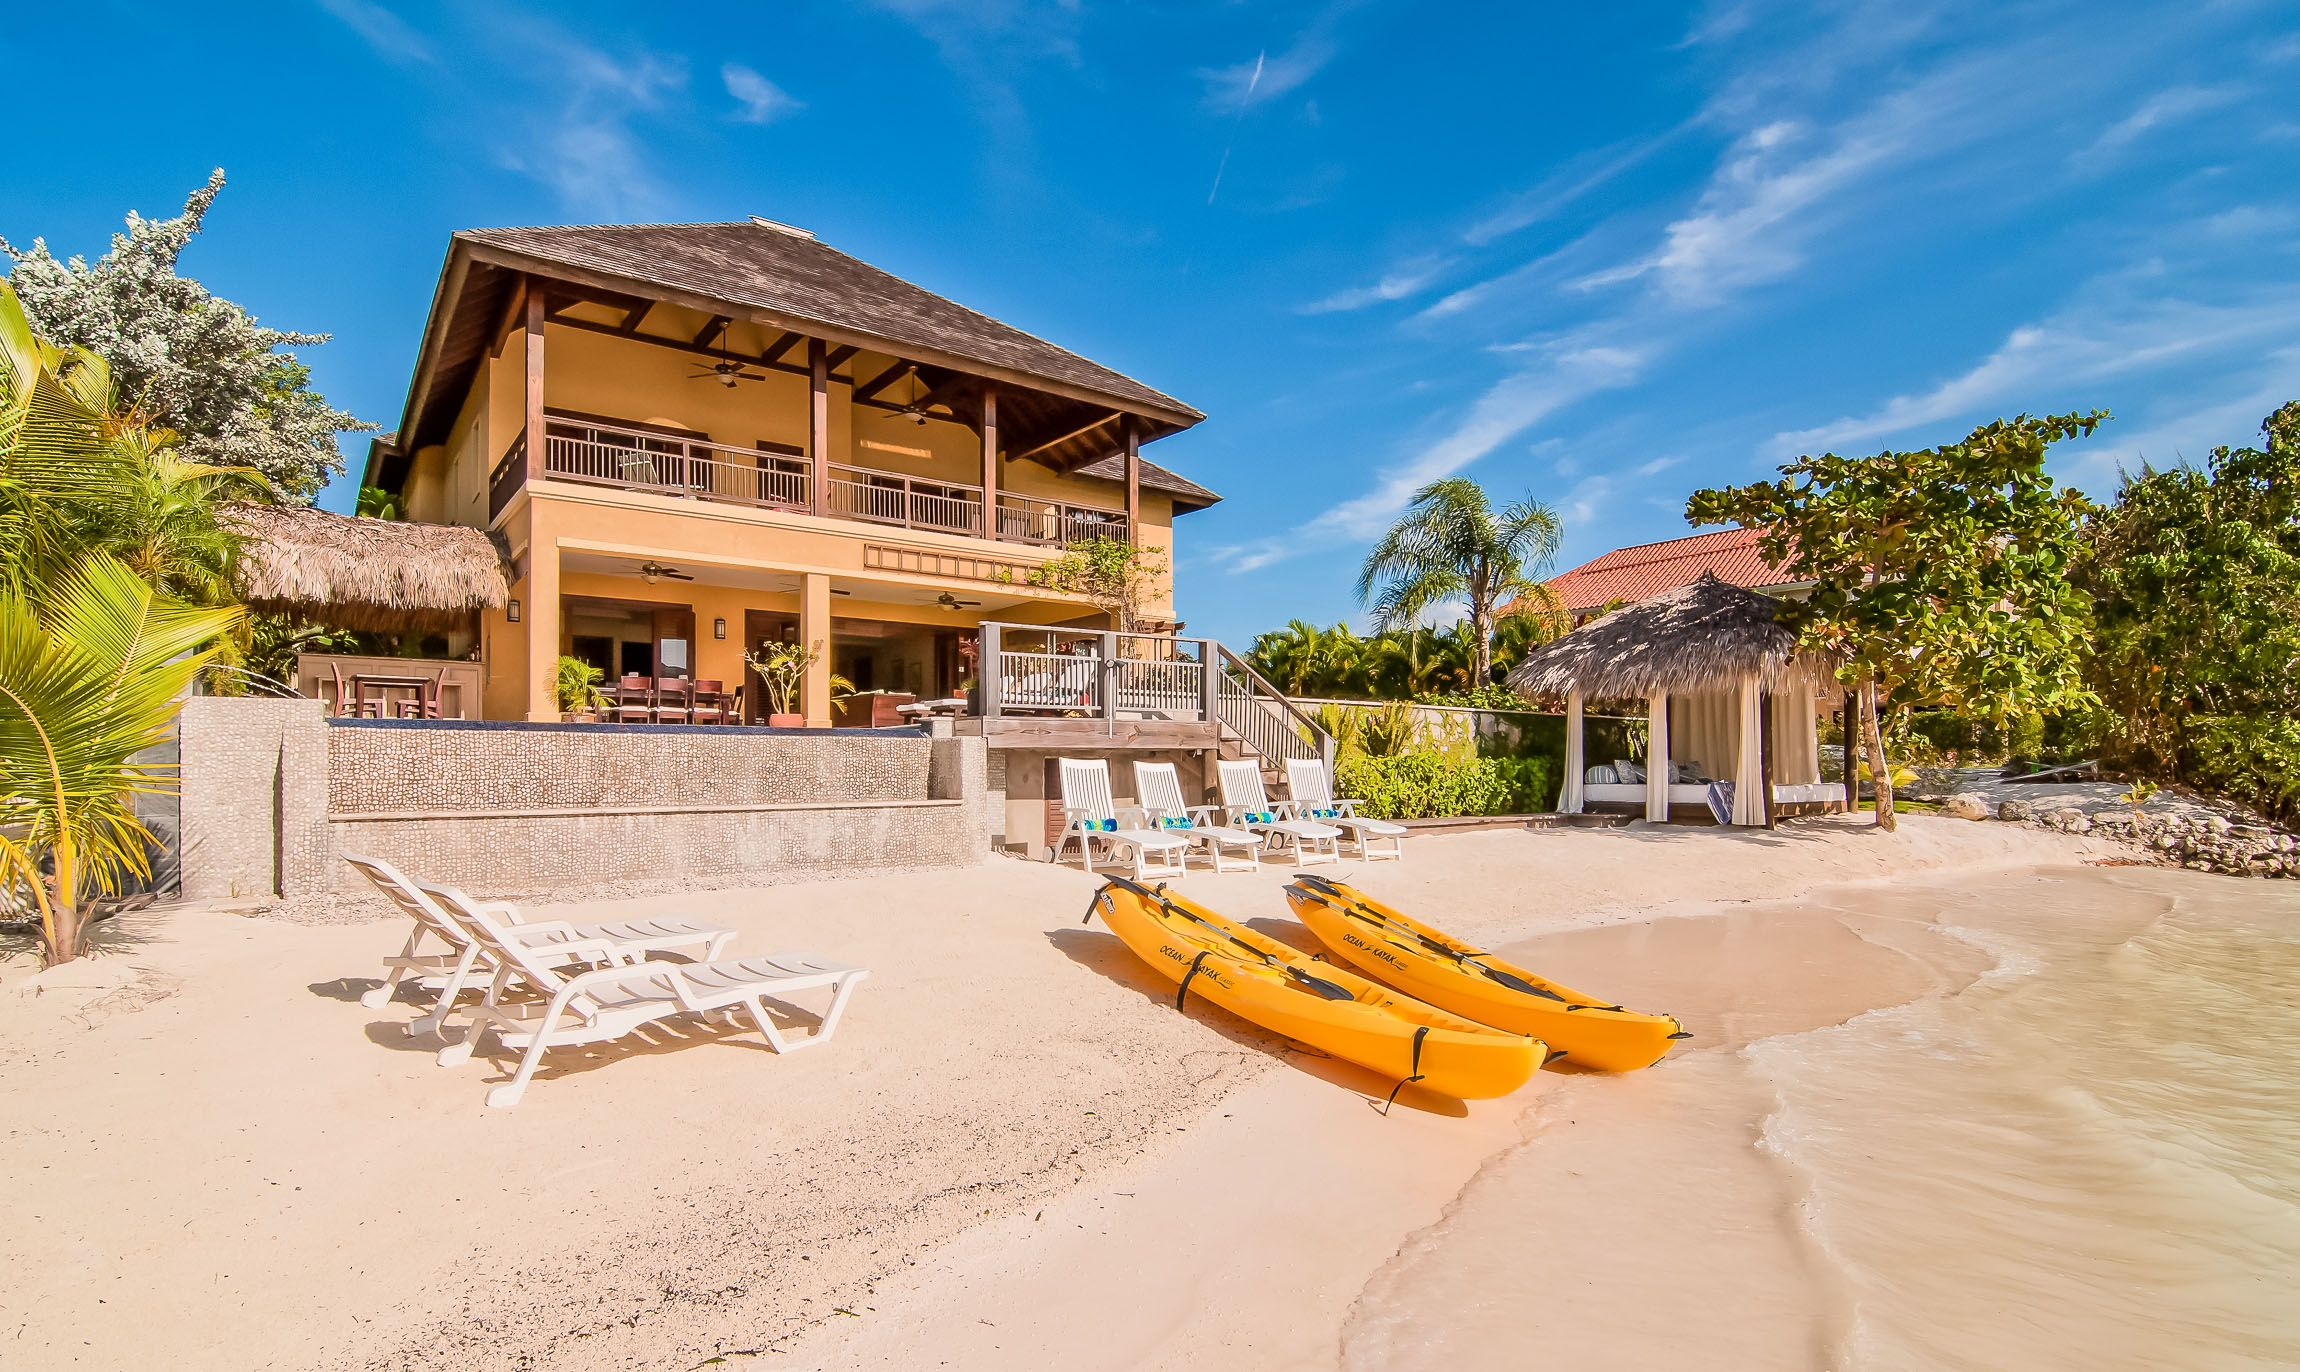 Check out this amazing luxury retreats beach property in